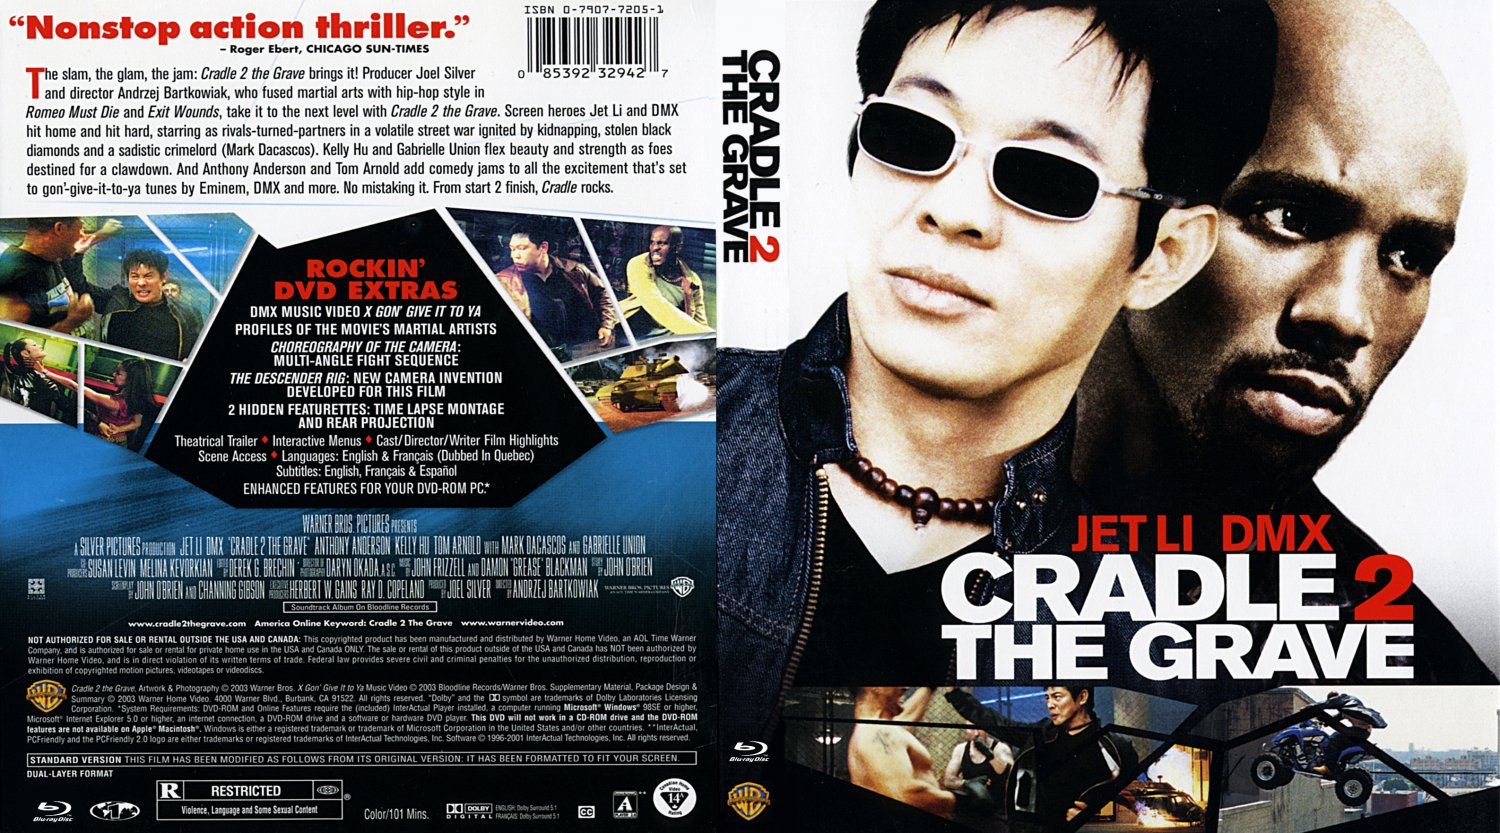 http://www.dvd-covers.org/d/294146-2/Cradle_2_The_Grave_2003_CustomBD.jpg